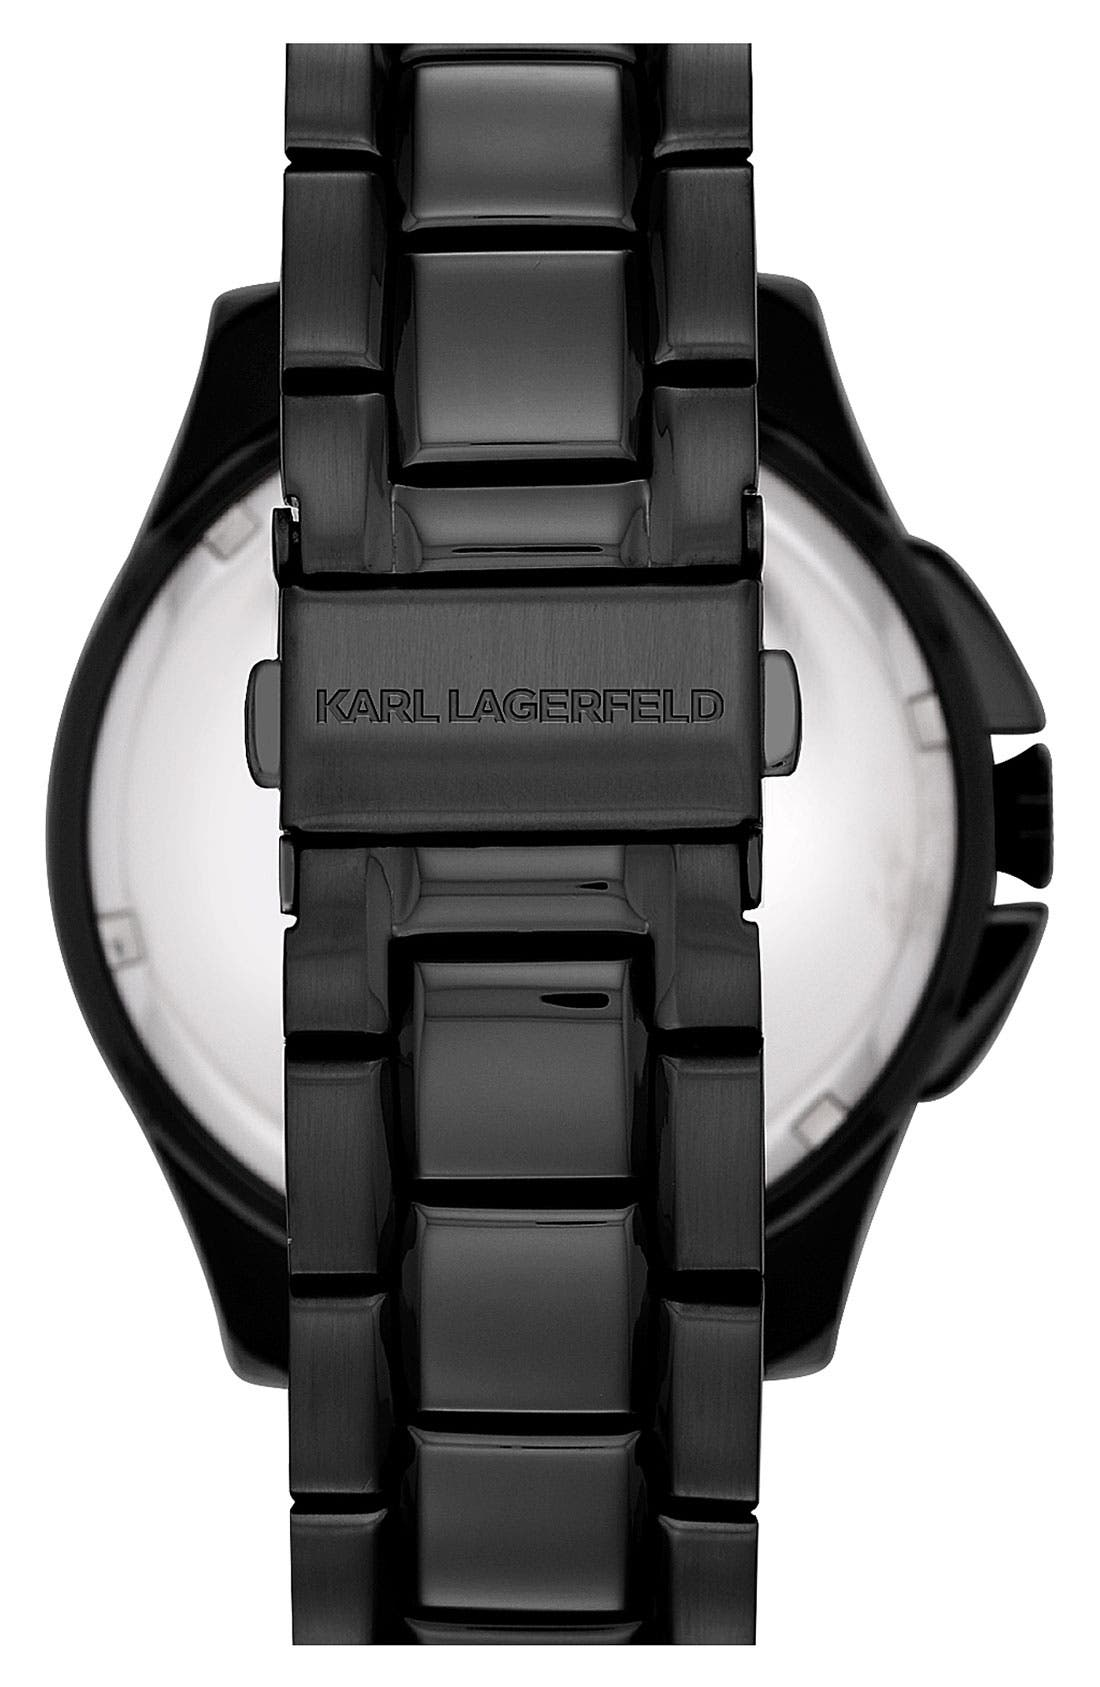 KARL LAGERFELD PARIS, KARL LAGERFELD '7' Faceted Bezel Bracelet Watch, 44mm, Alternate thumbnail 2, color, 001